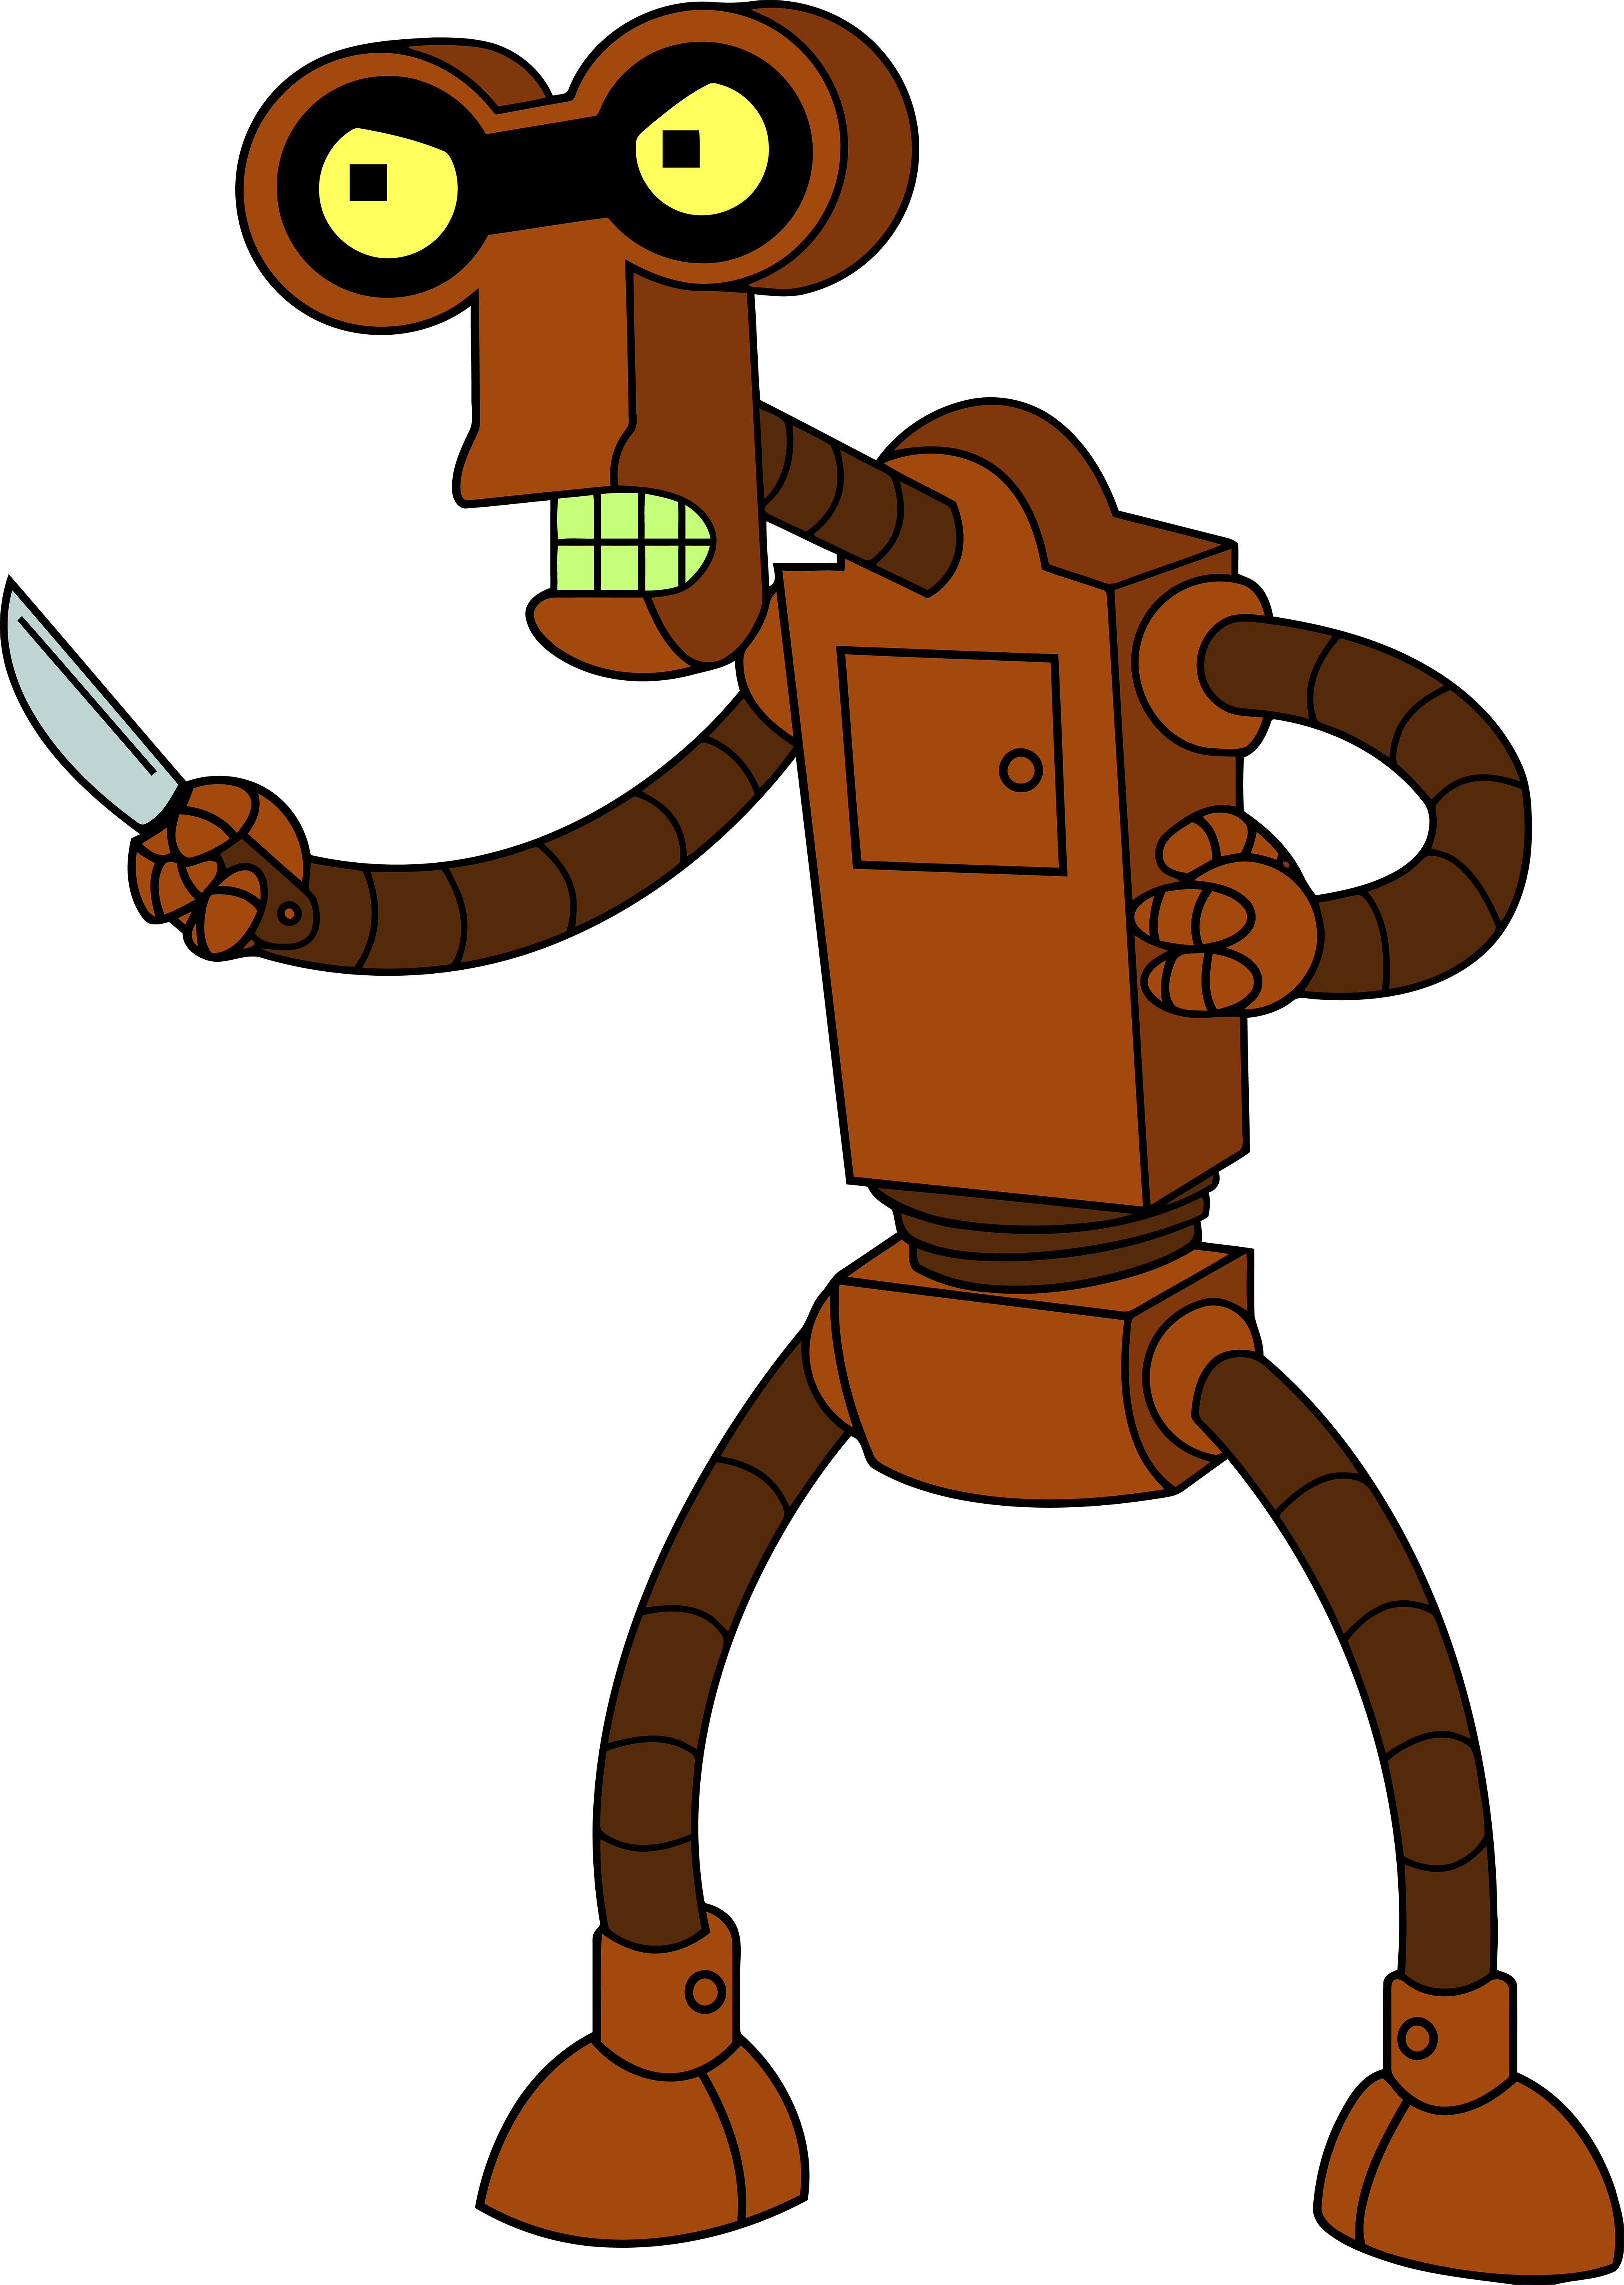 Killer clipart stab. Futurama expansion sets official